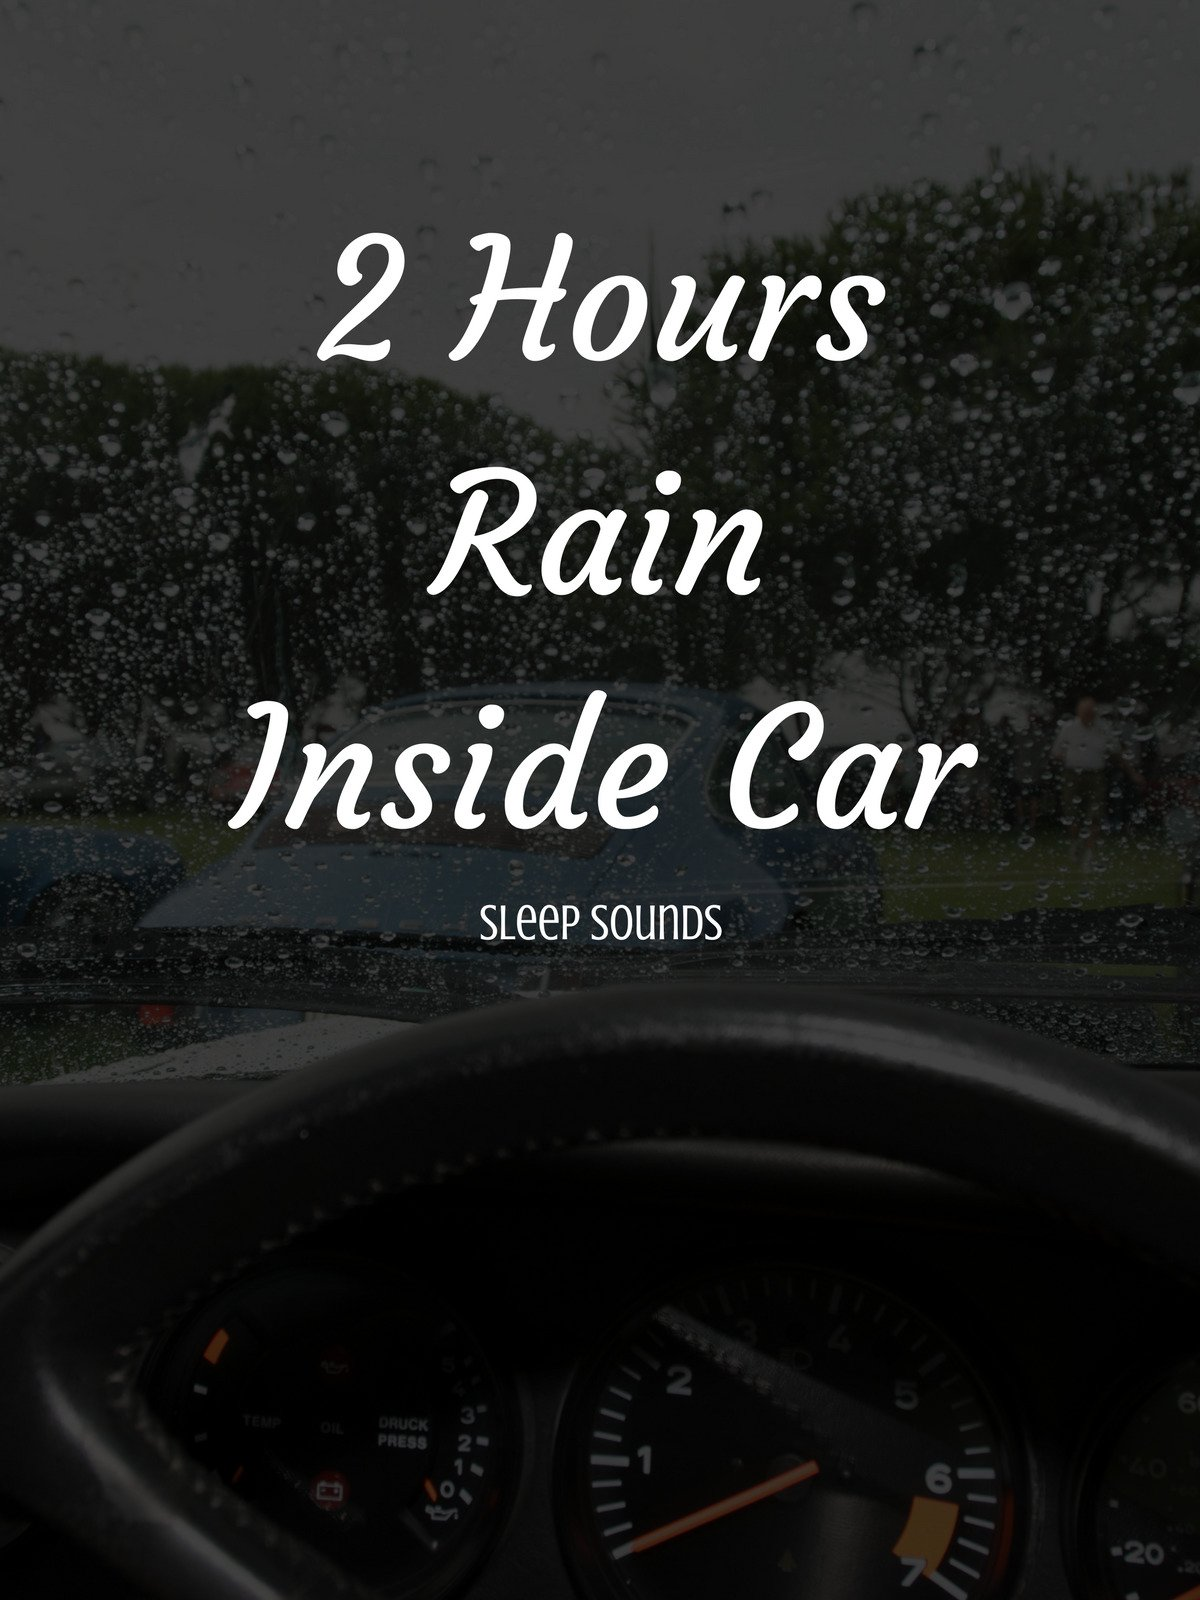 2 Hours Rain Inside Car